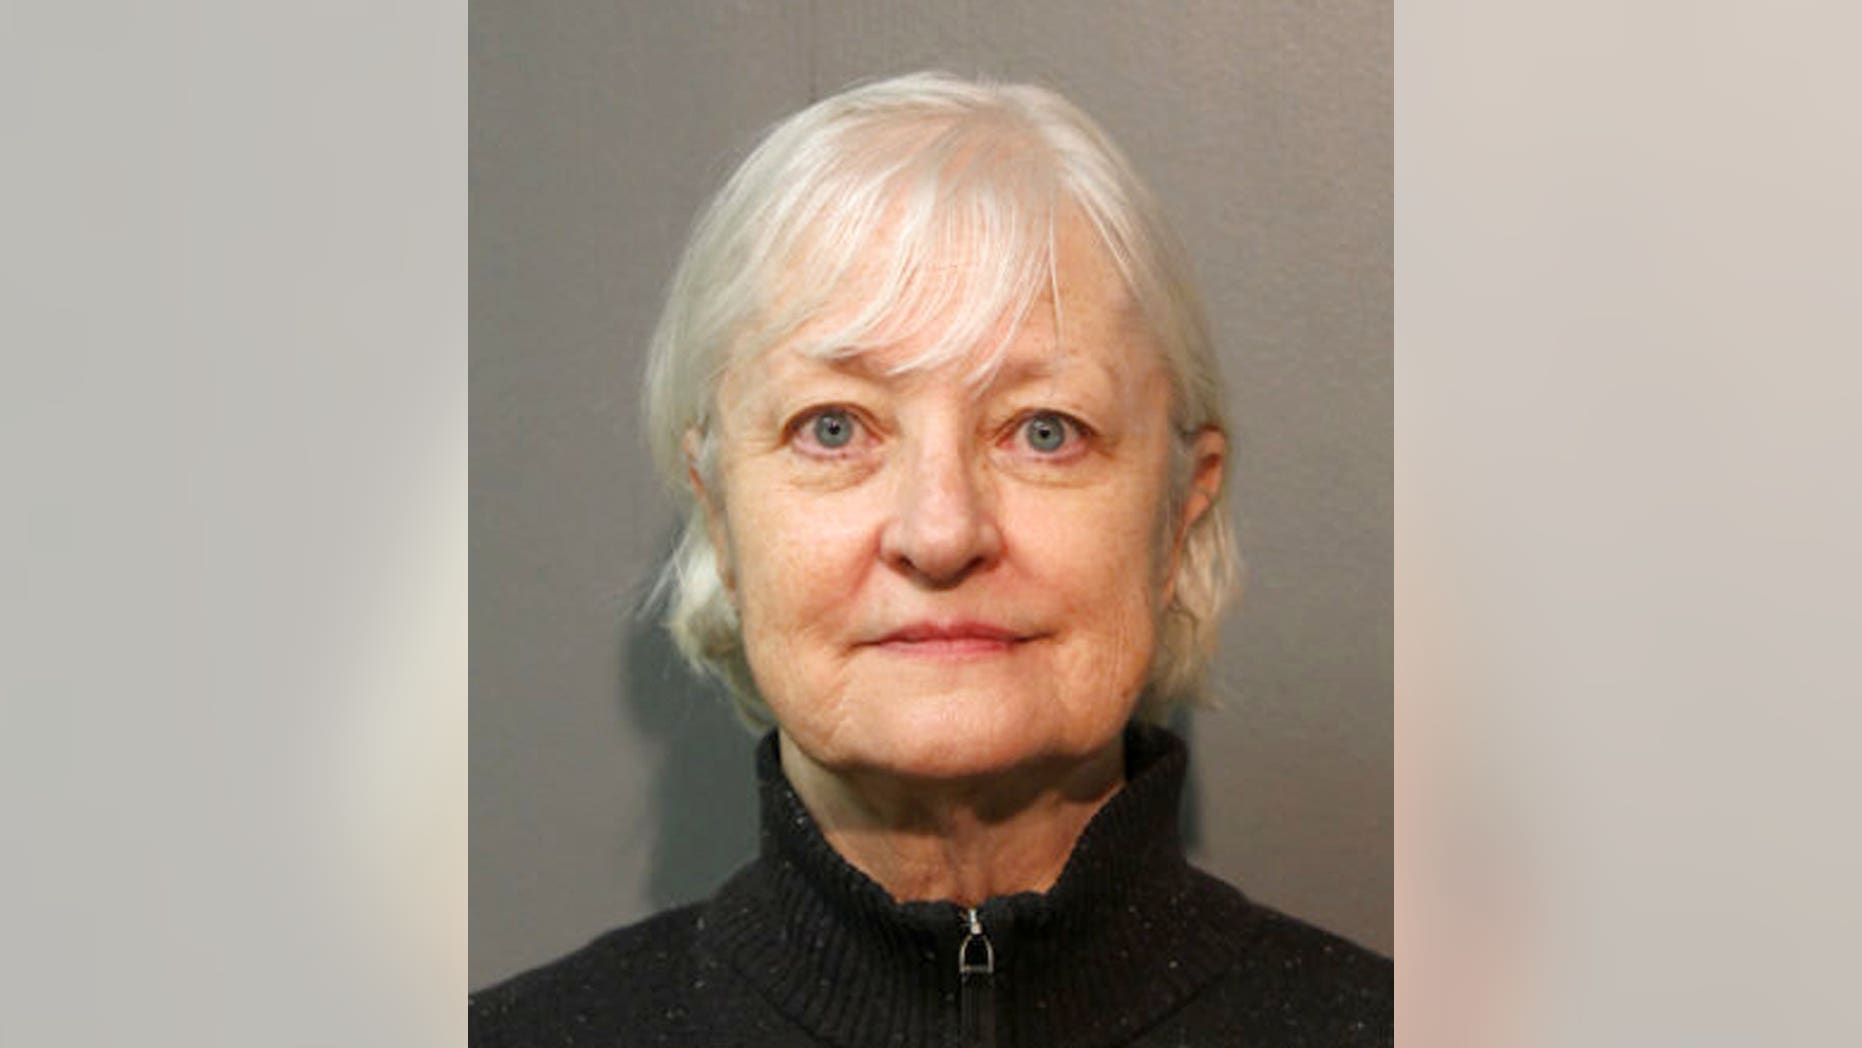 In this Jan. 2018, photo provided by the Chicago Police Department, Marilyn Hartman is seen posing for a mugshot in Chicago.  (Chicago Police Department via AP)